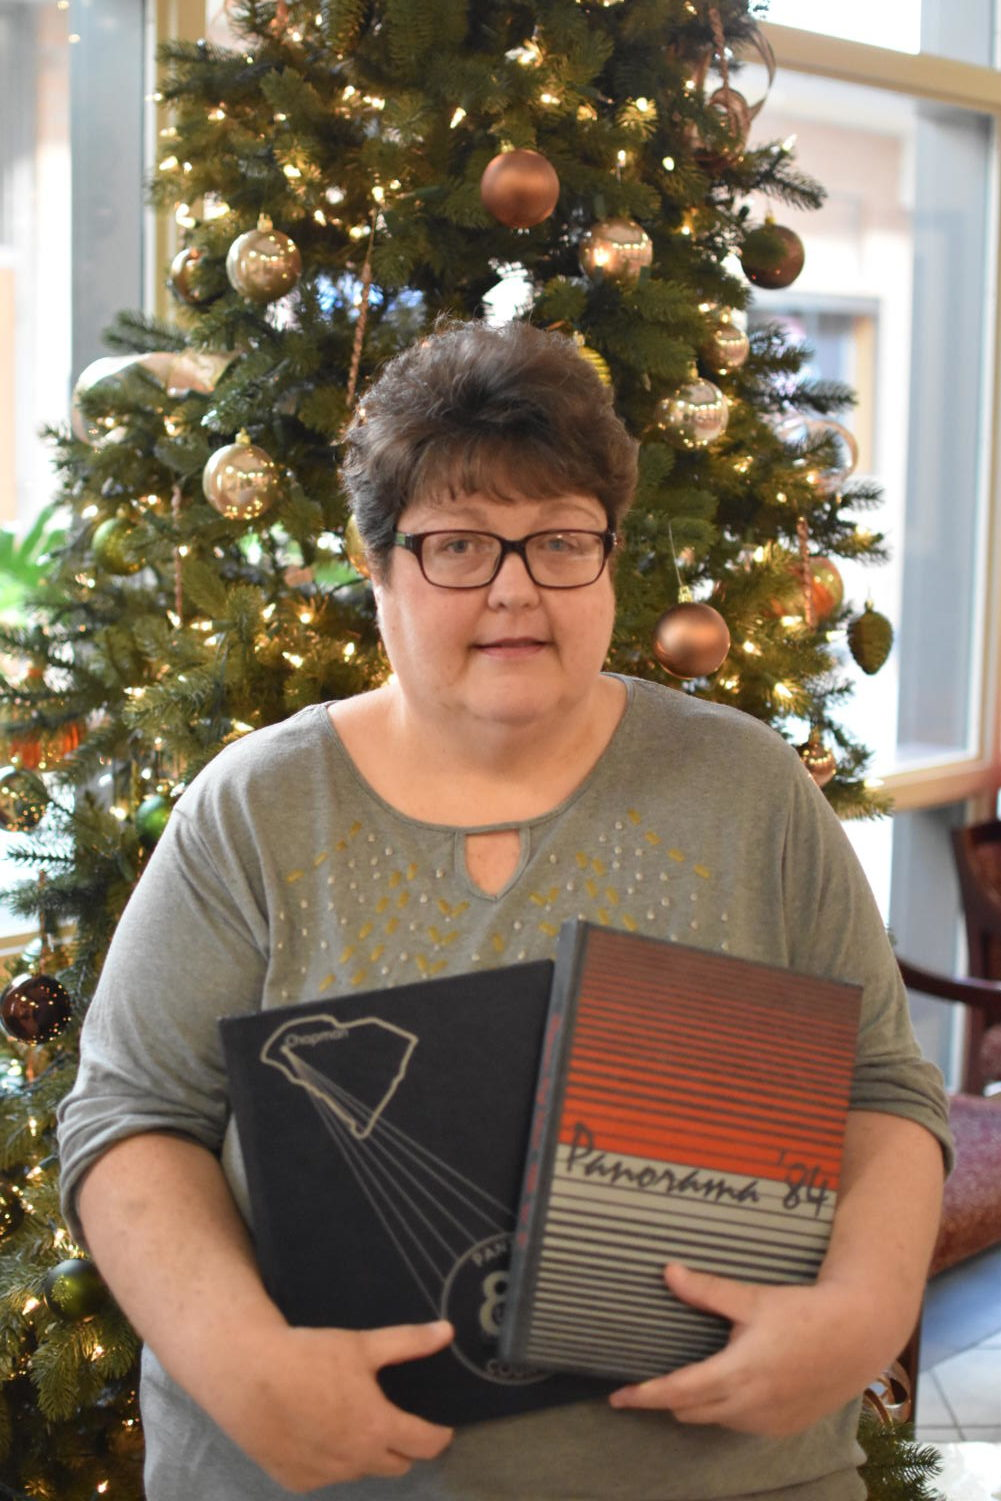 Ms. Myra Jenkins receives copies of her Chapman yearbooks from her days as a student.